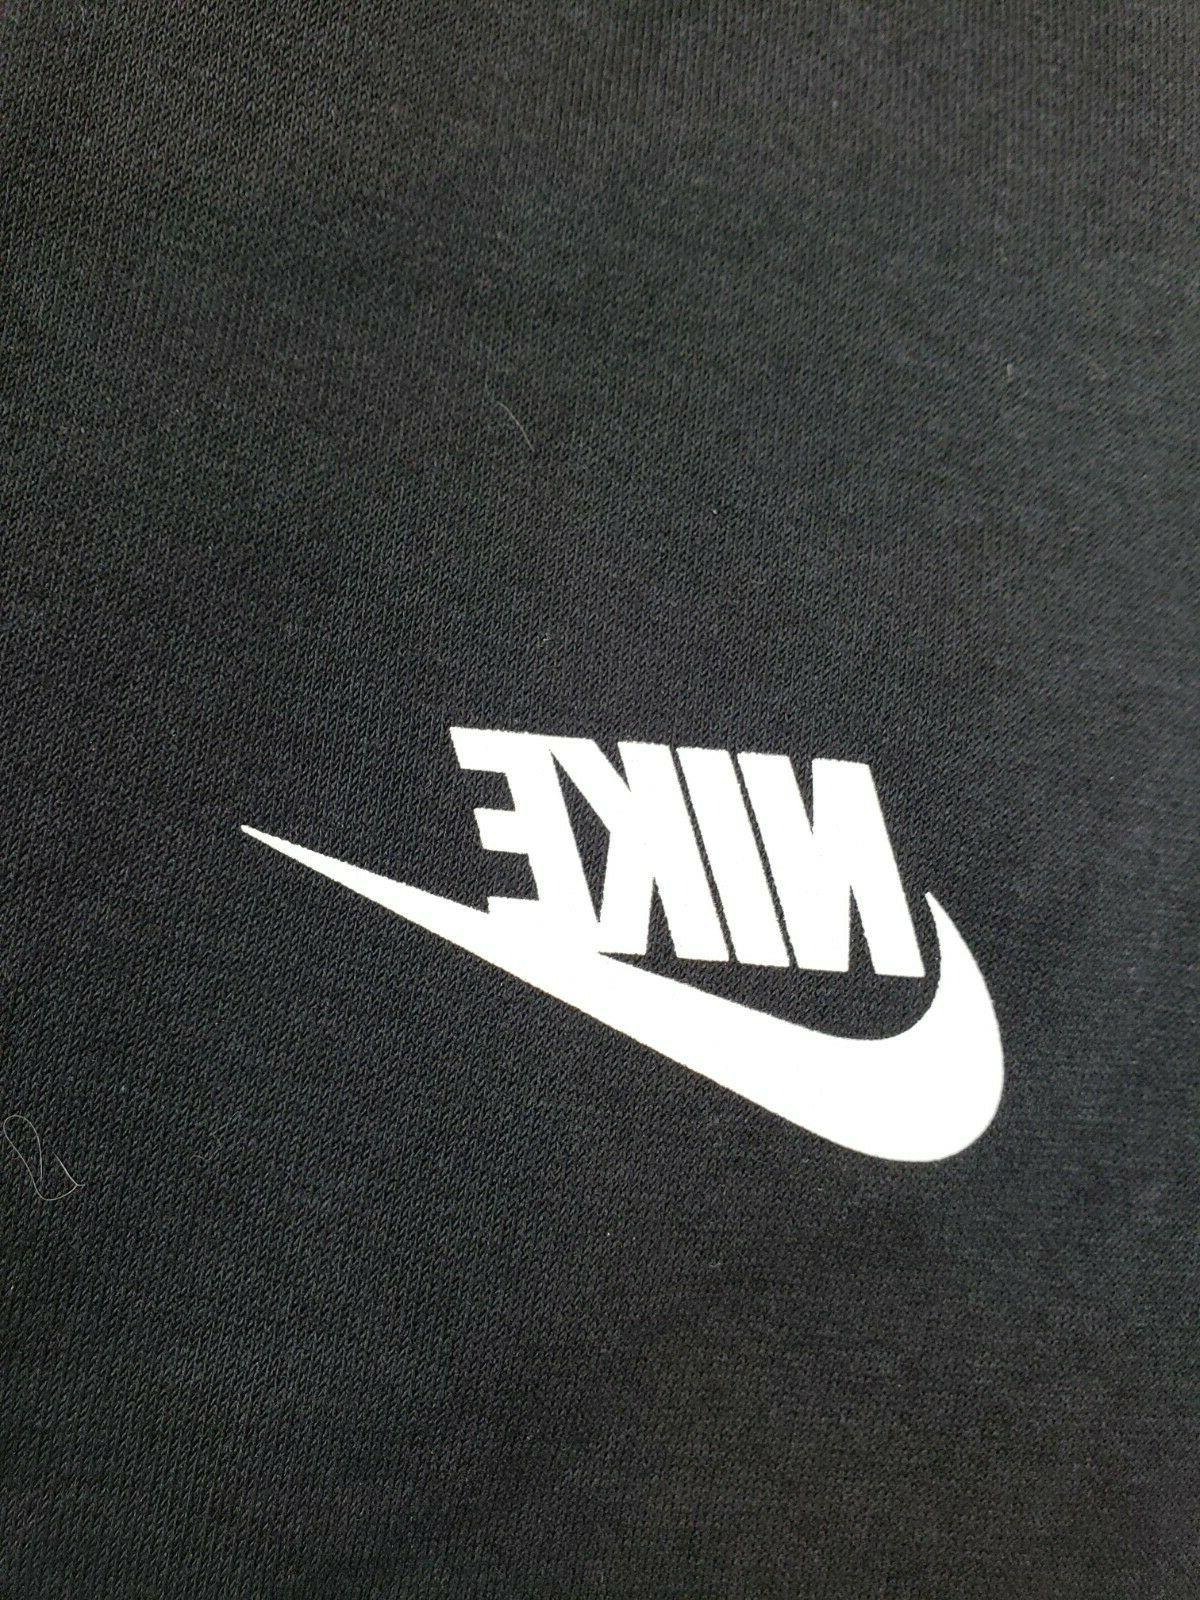 NIKE Sportswear Black/White, X-Large, XL,